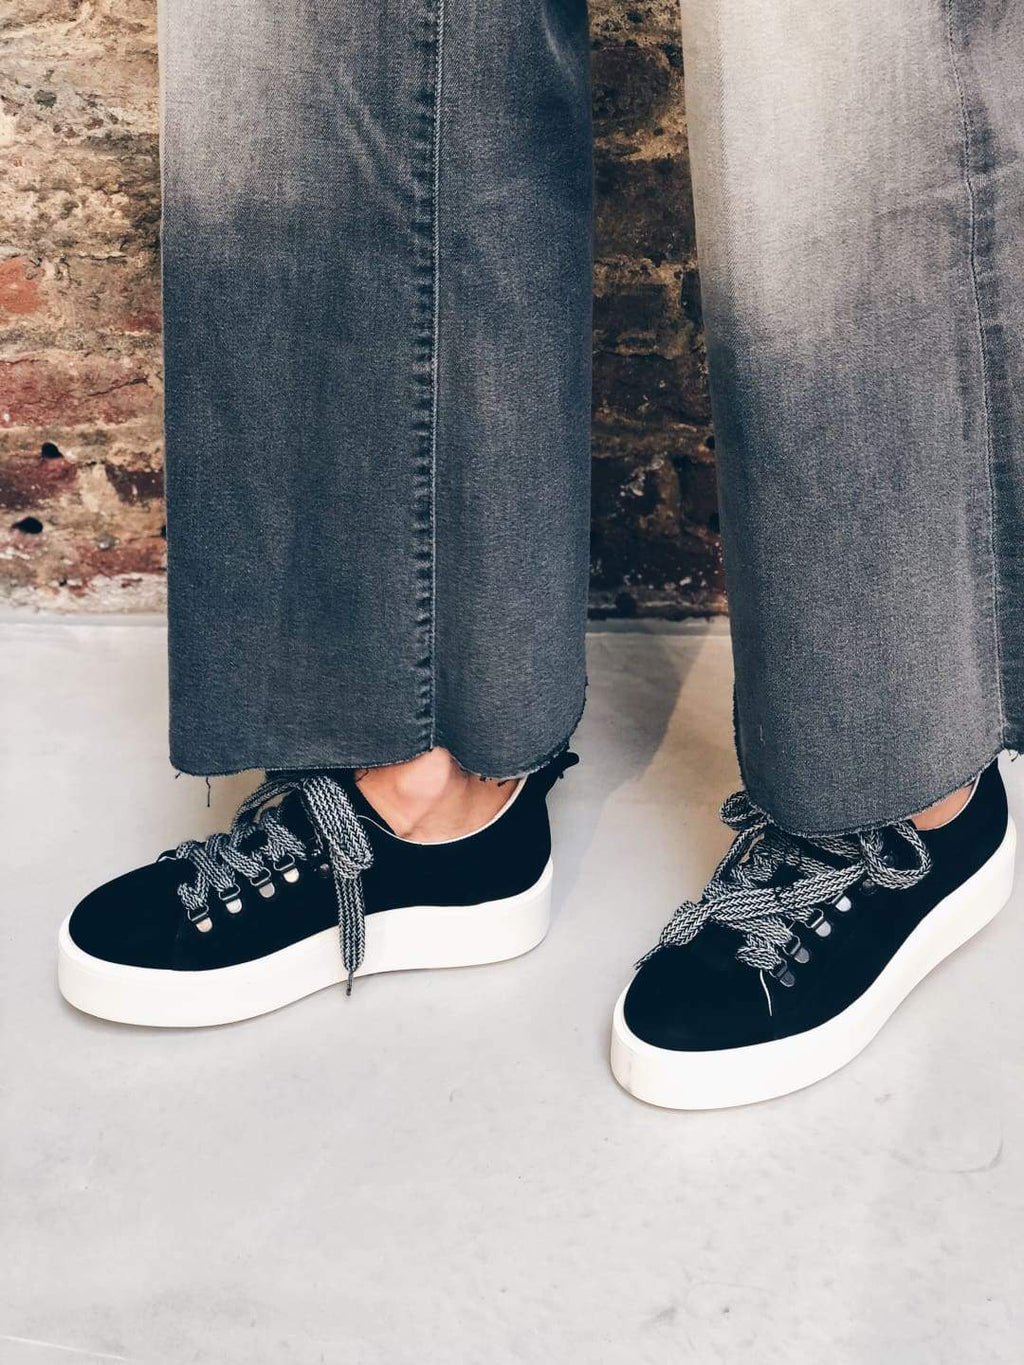 Black Plateform Sneakers